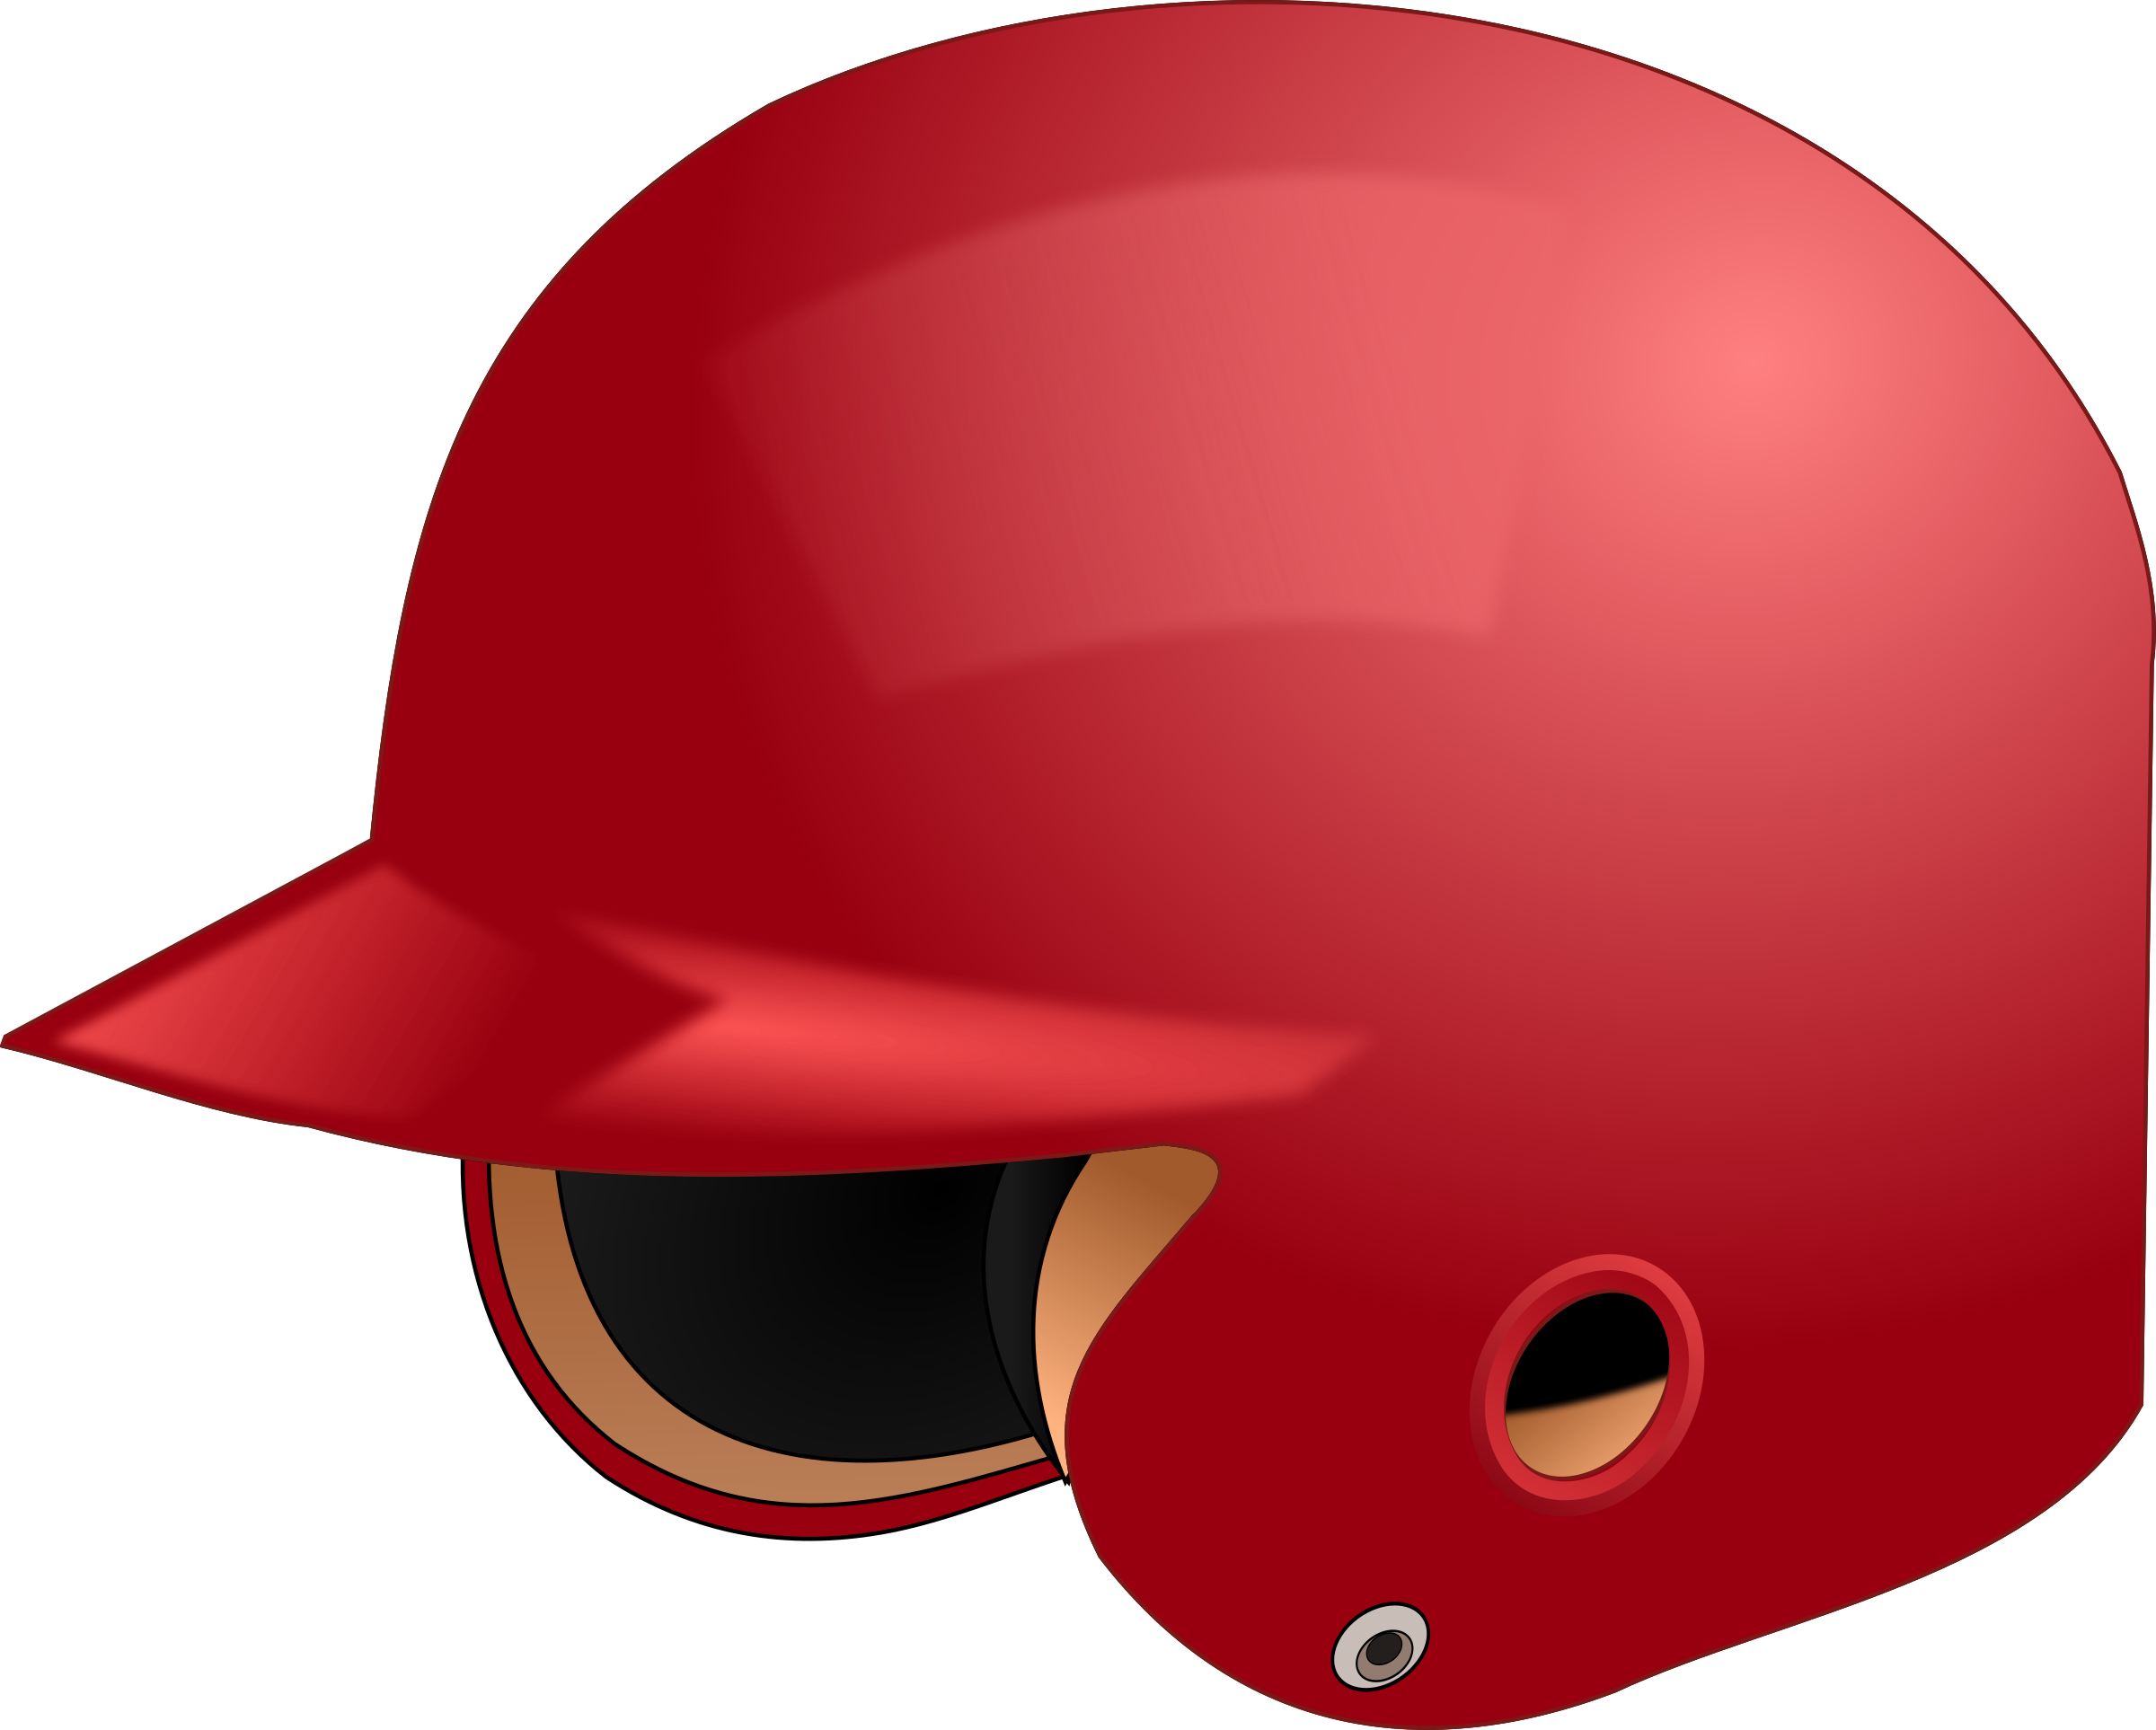 Baseball helmet big image. Softball clipart cartoon